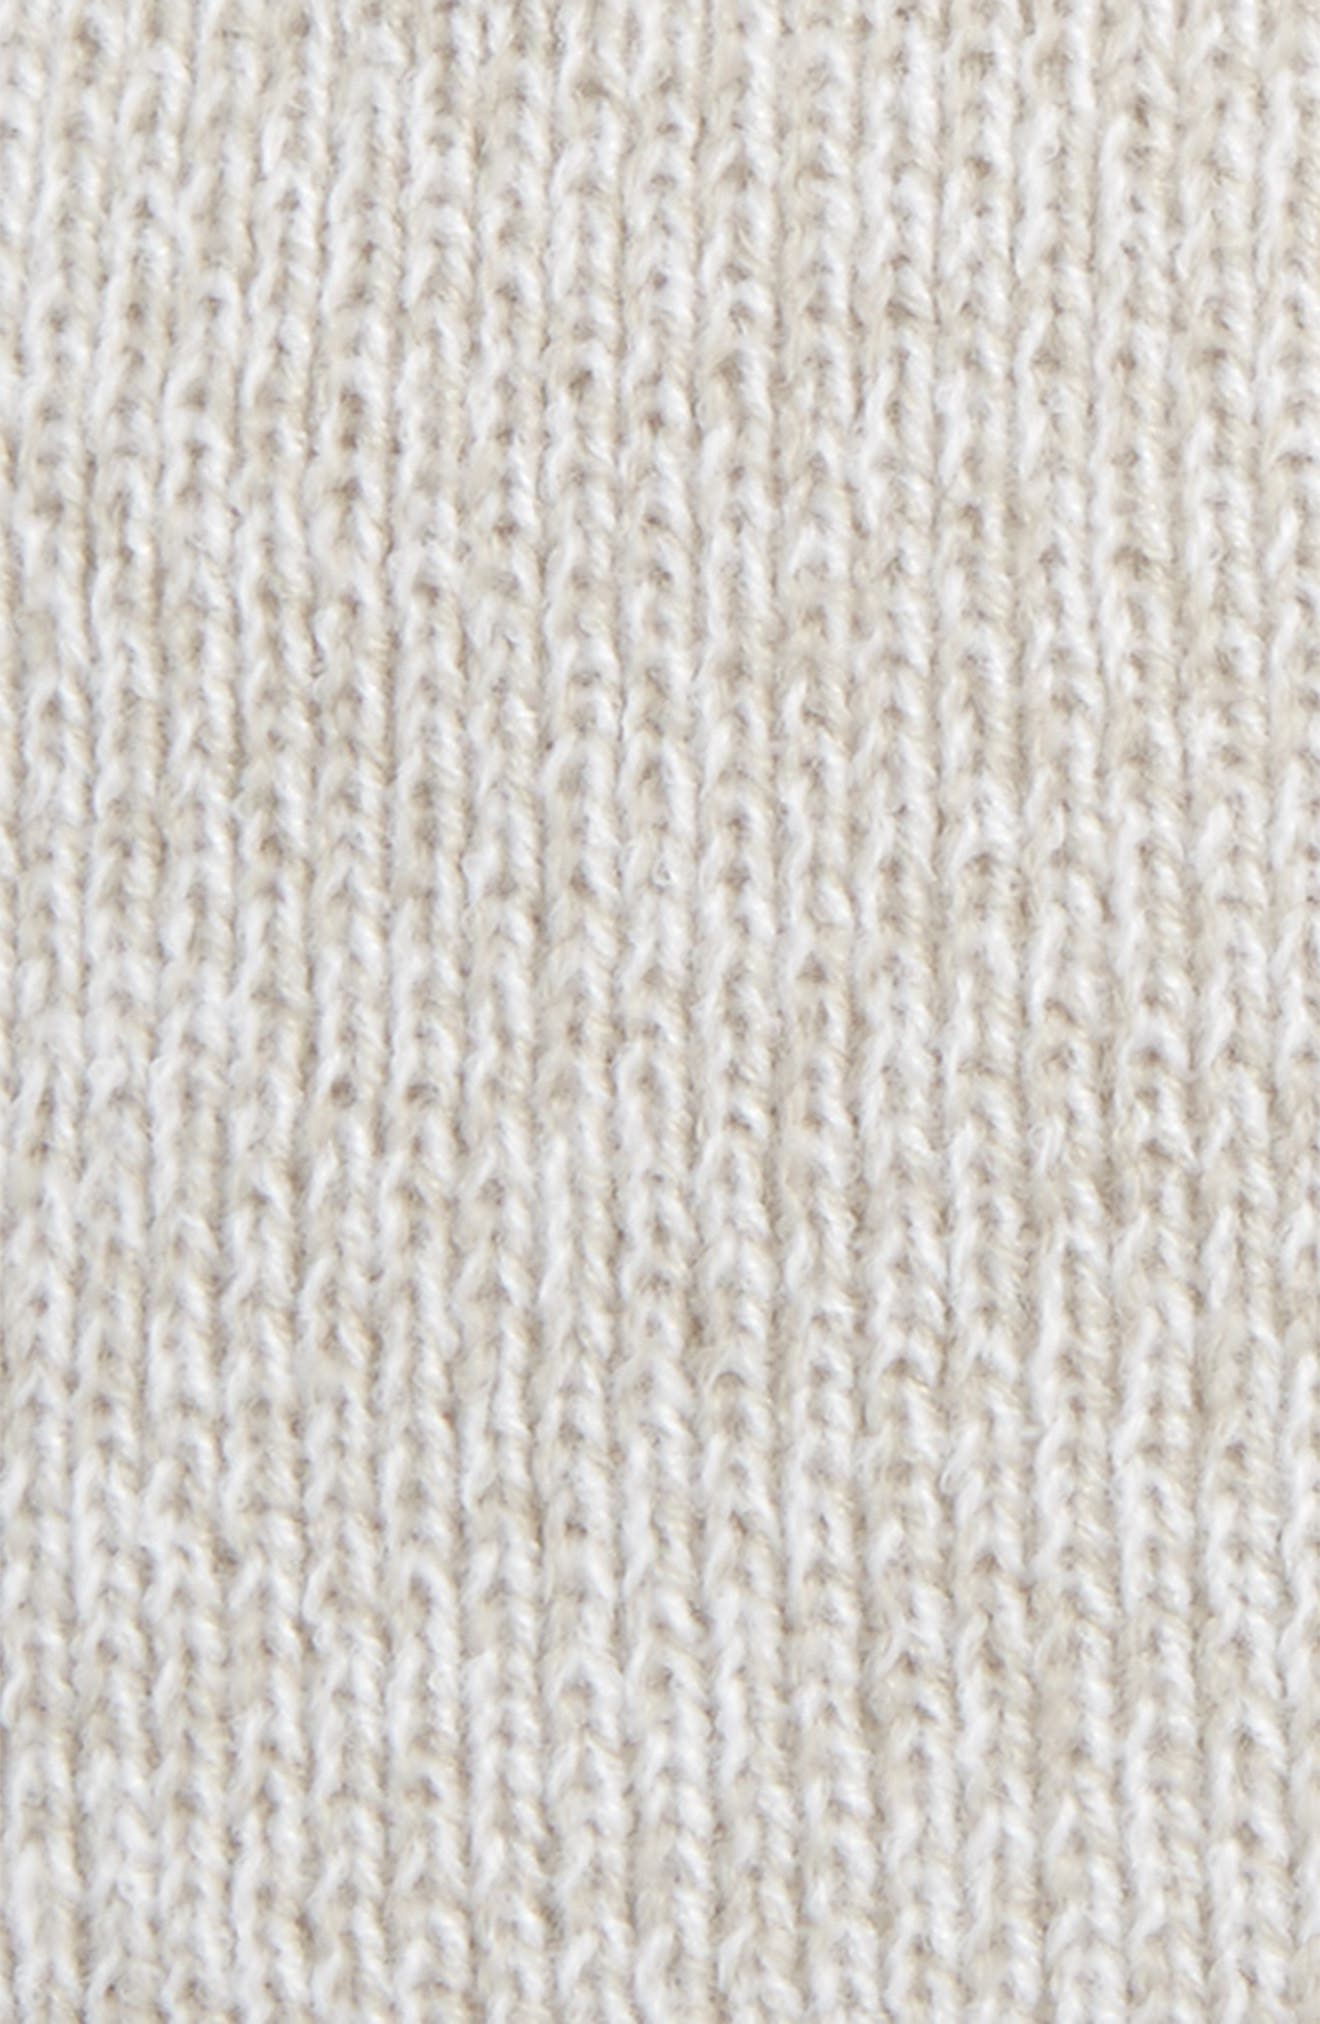 Marled Beanie,                             Alternate thumbnail 2, color,                             020